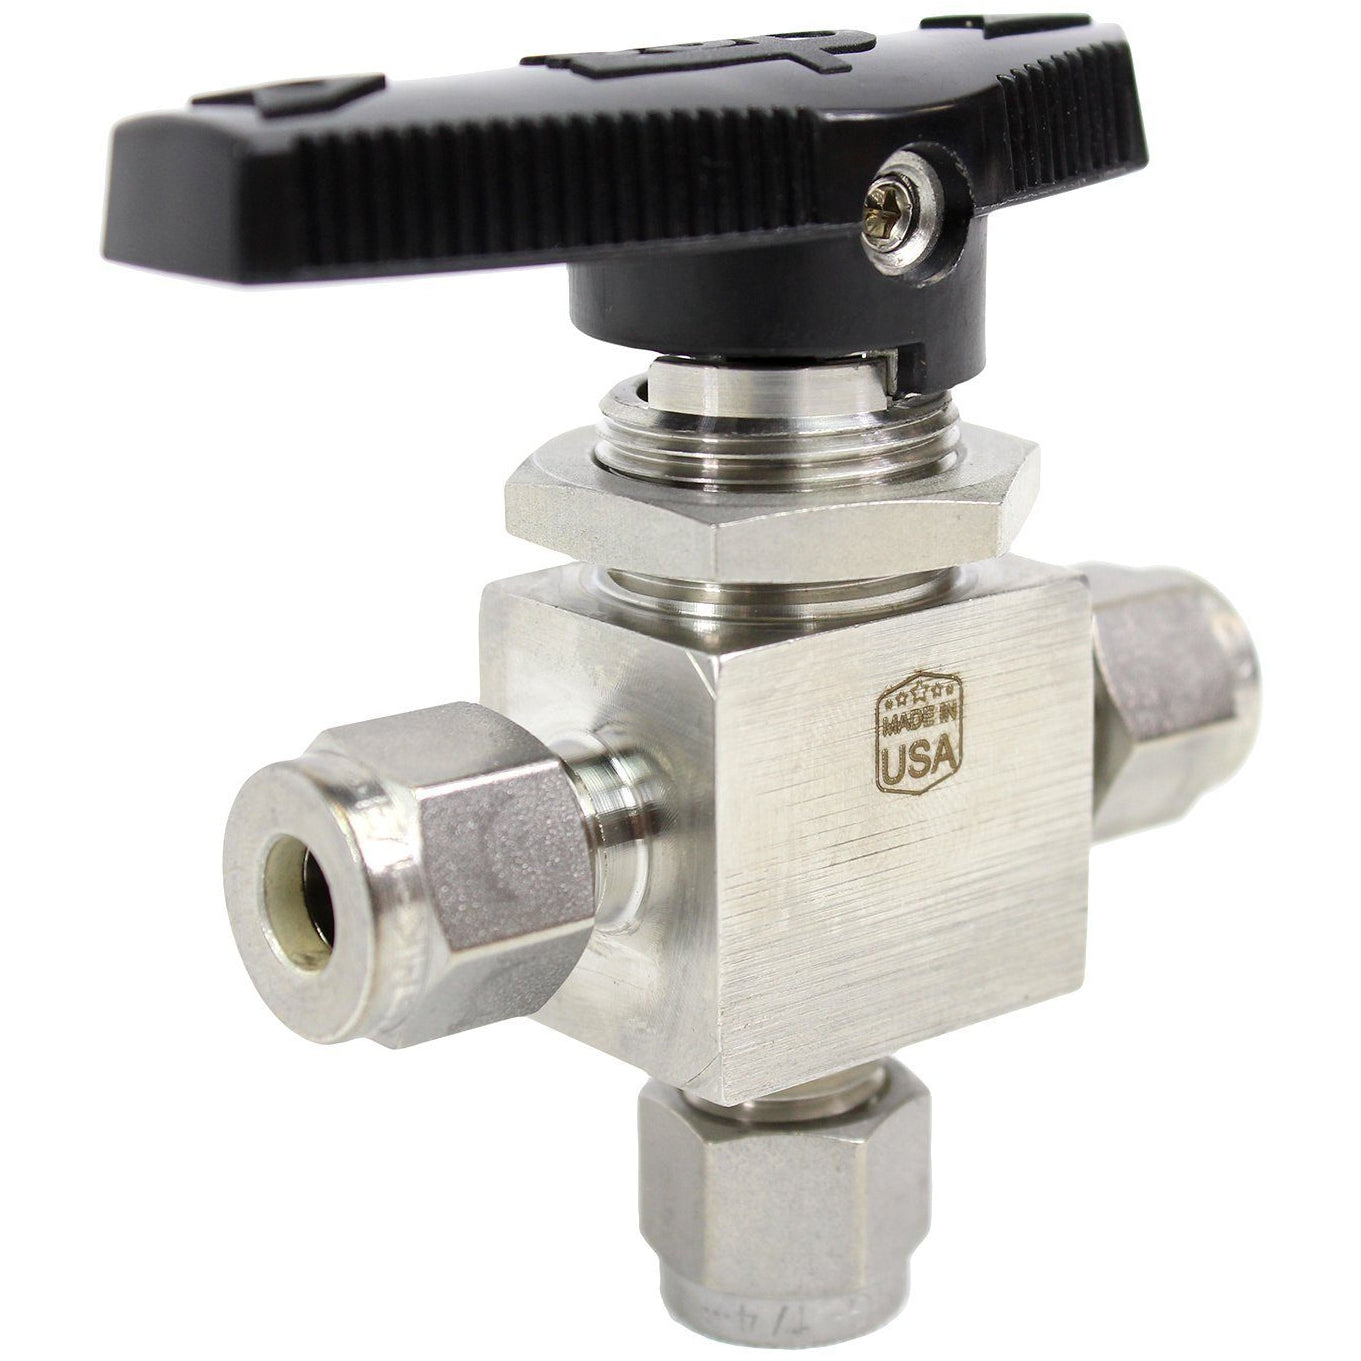 SSP - 3 Way Ball Valve - Fractional Tube Fitting Shop All Categories SSP Corporation